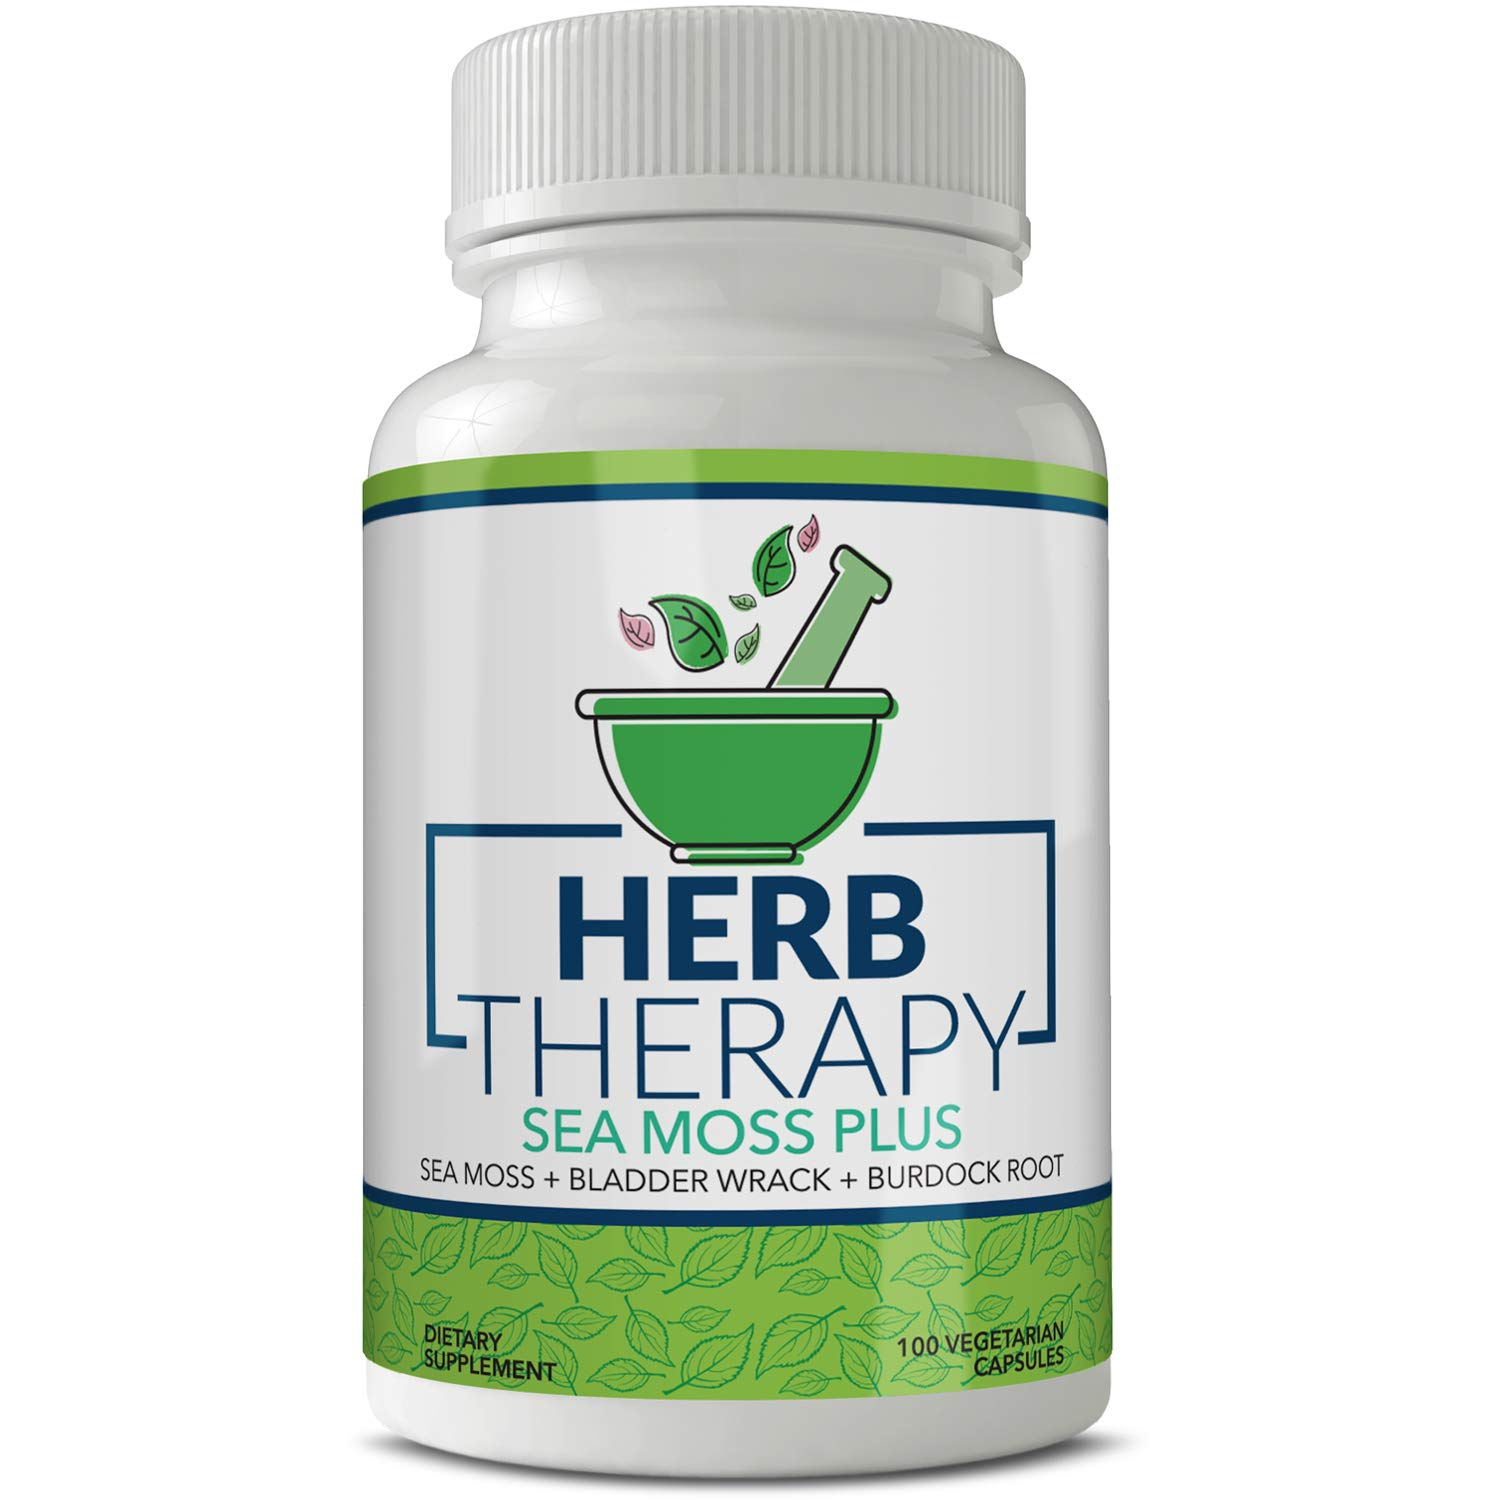 Herb Therapy Sea Moss Plus 100 Capsules 1500mg Irish Sea Moss Bladderwrack Burdock Root. Alkaline Supplements Non-GMO Thyroid Support No Fillers